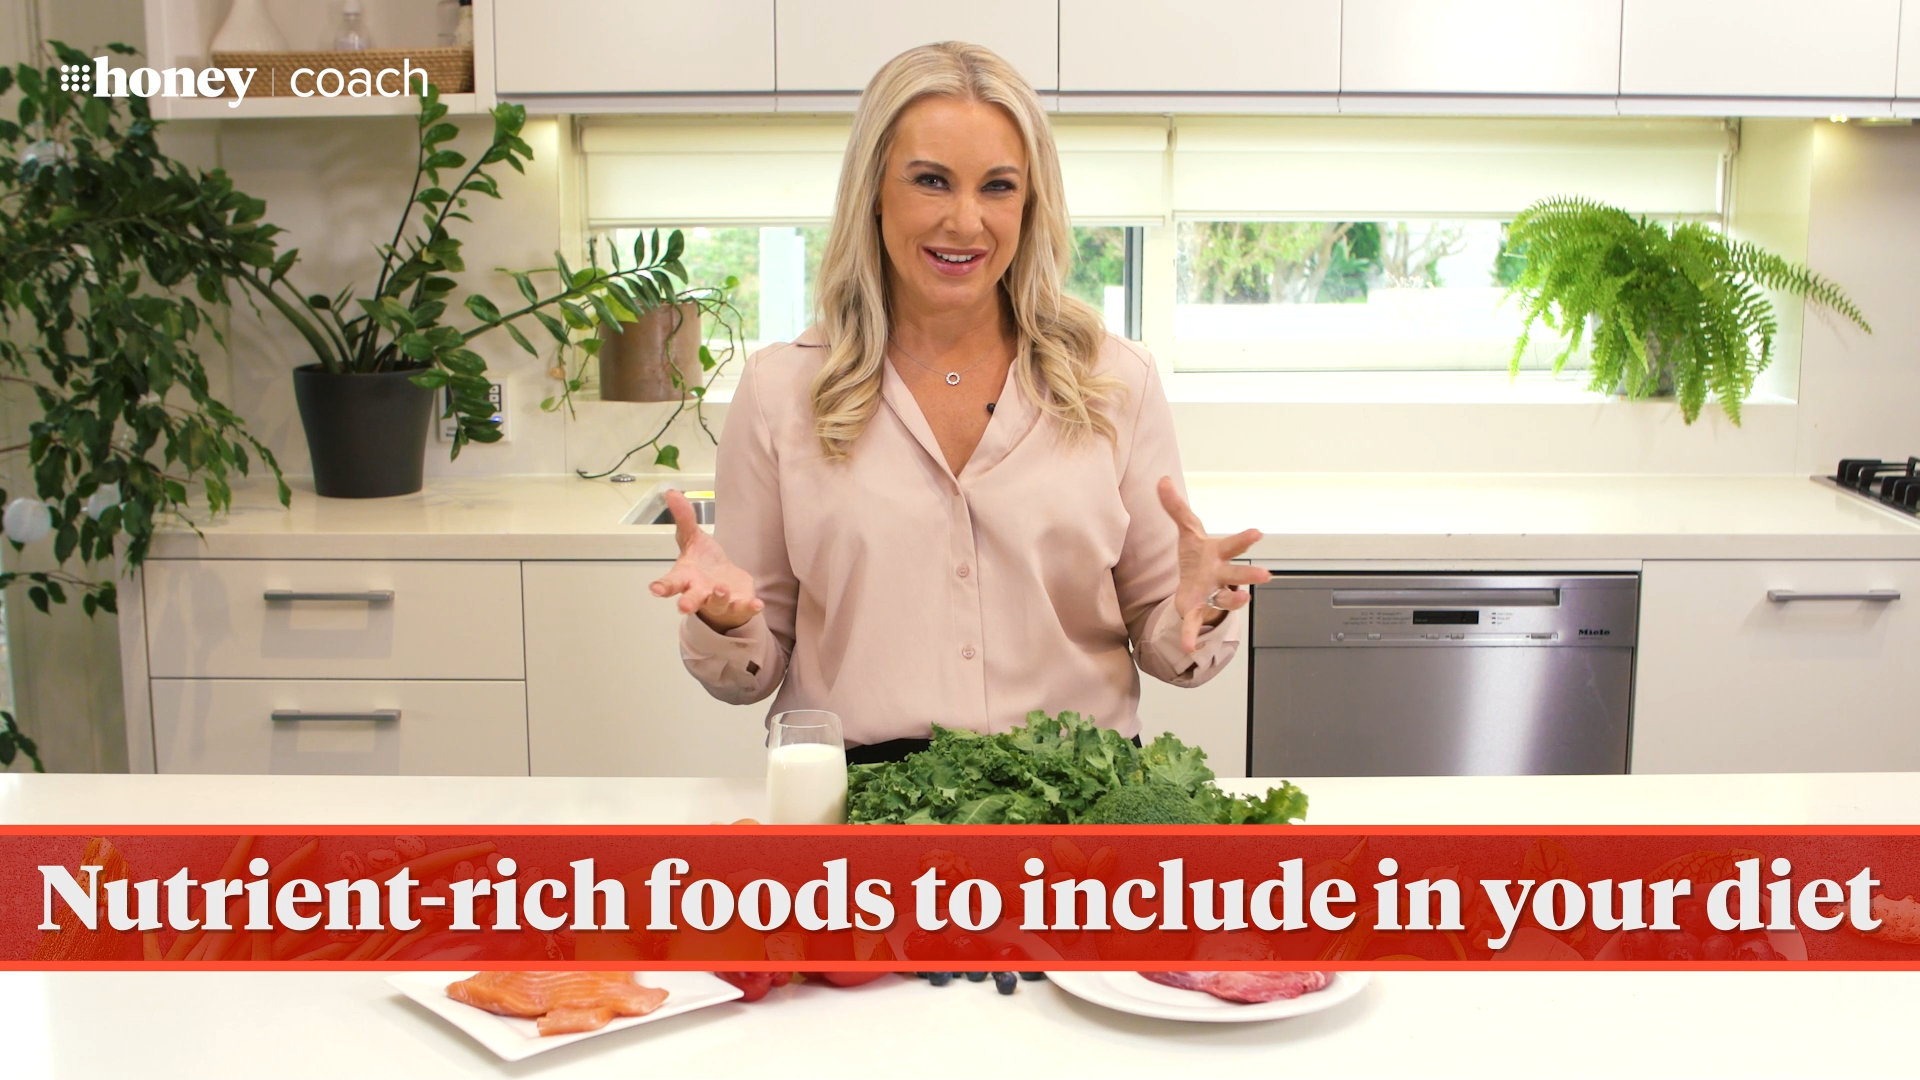 Nutrient-rich foods to include in your diet